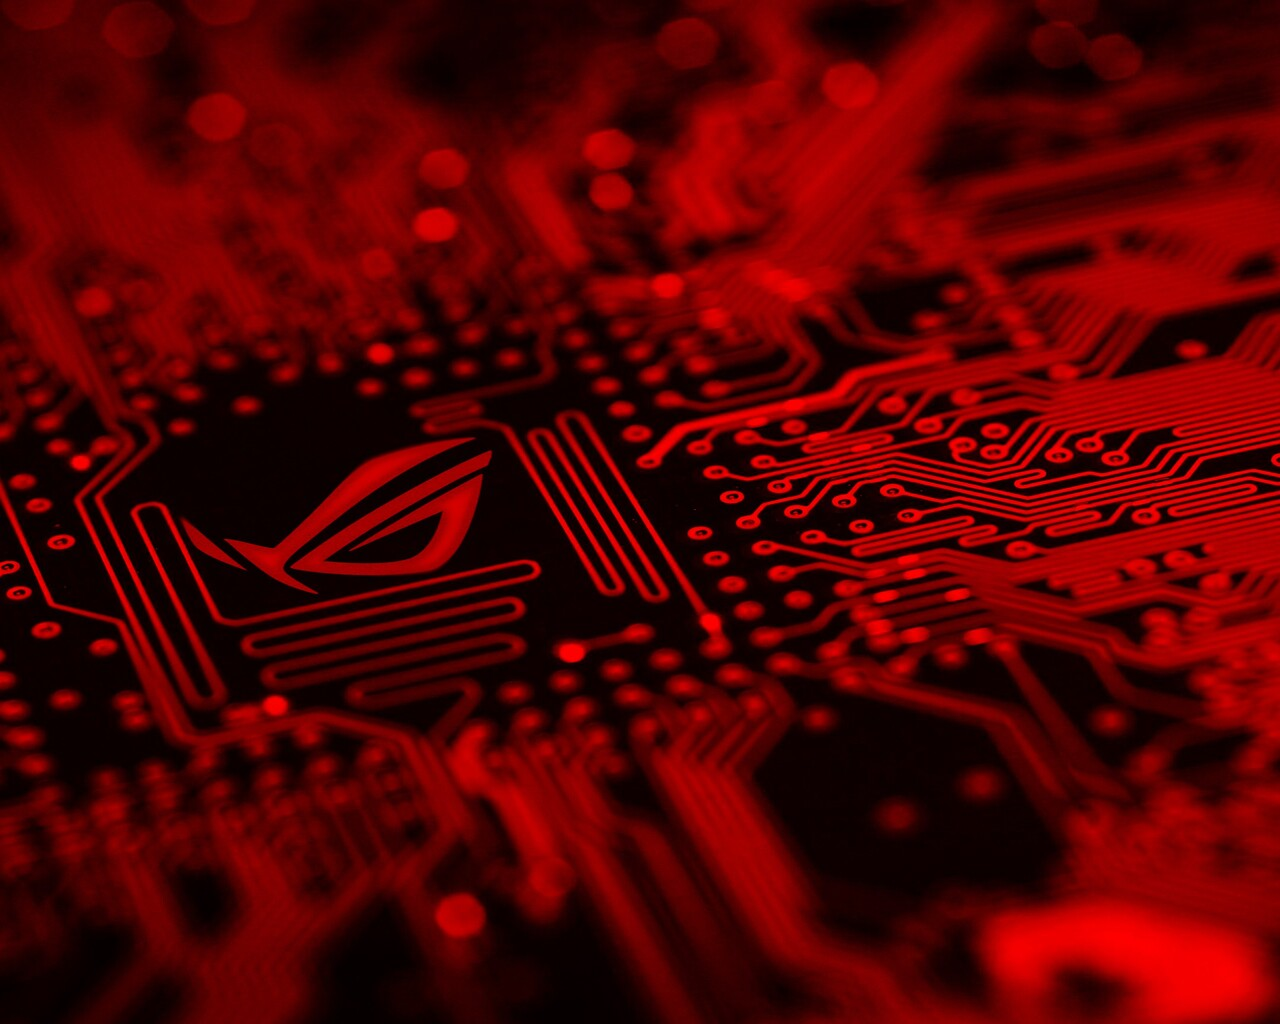 1280x1024 Republic Of Gamers Motherboard Red Background